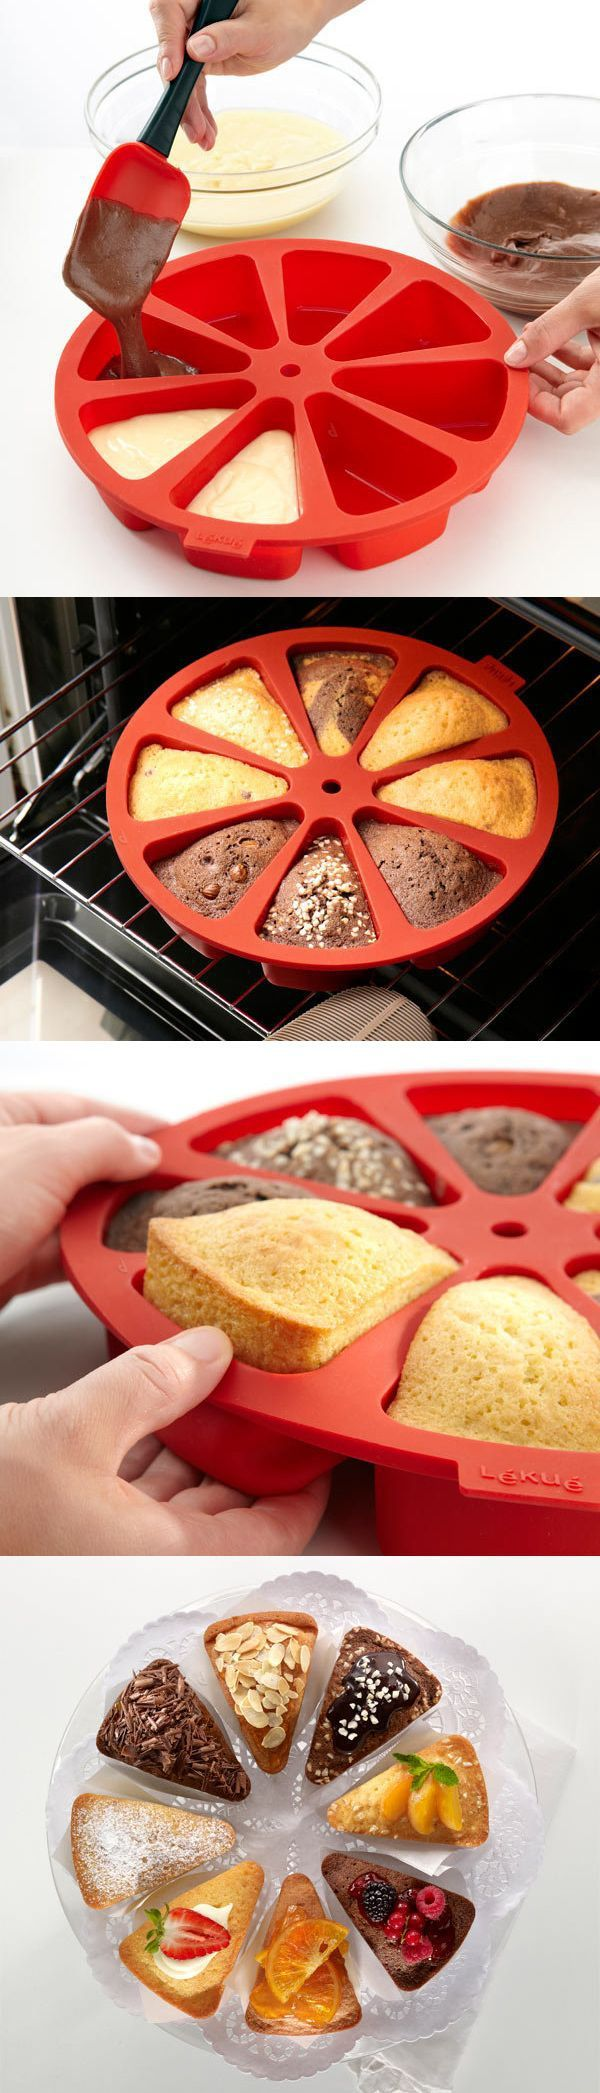 Awesome Products: Cake Mold for Individual Slices